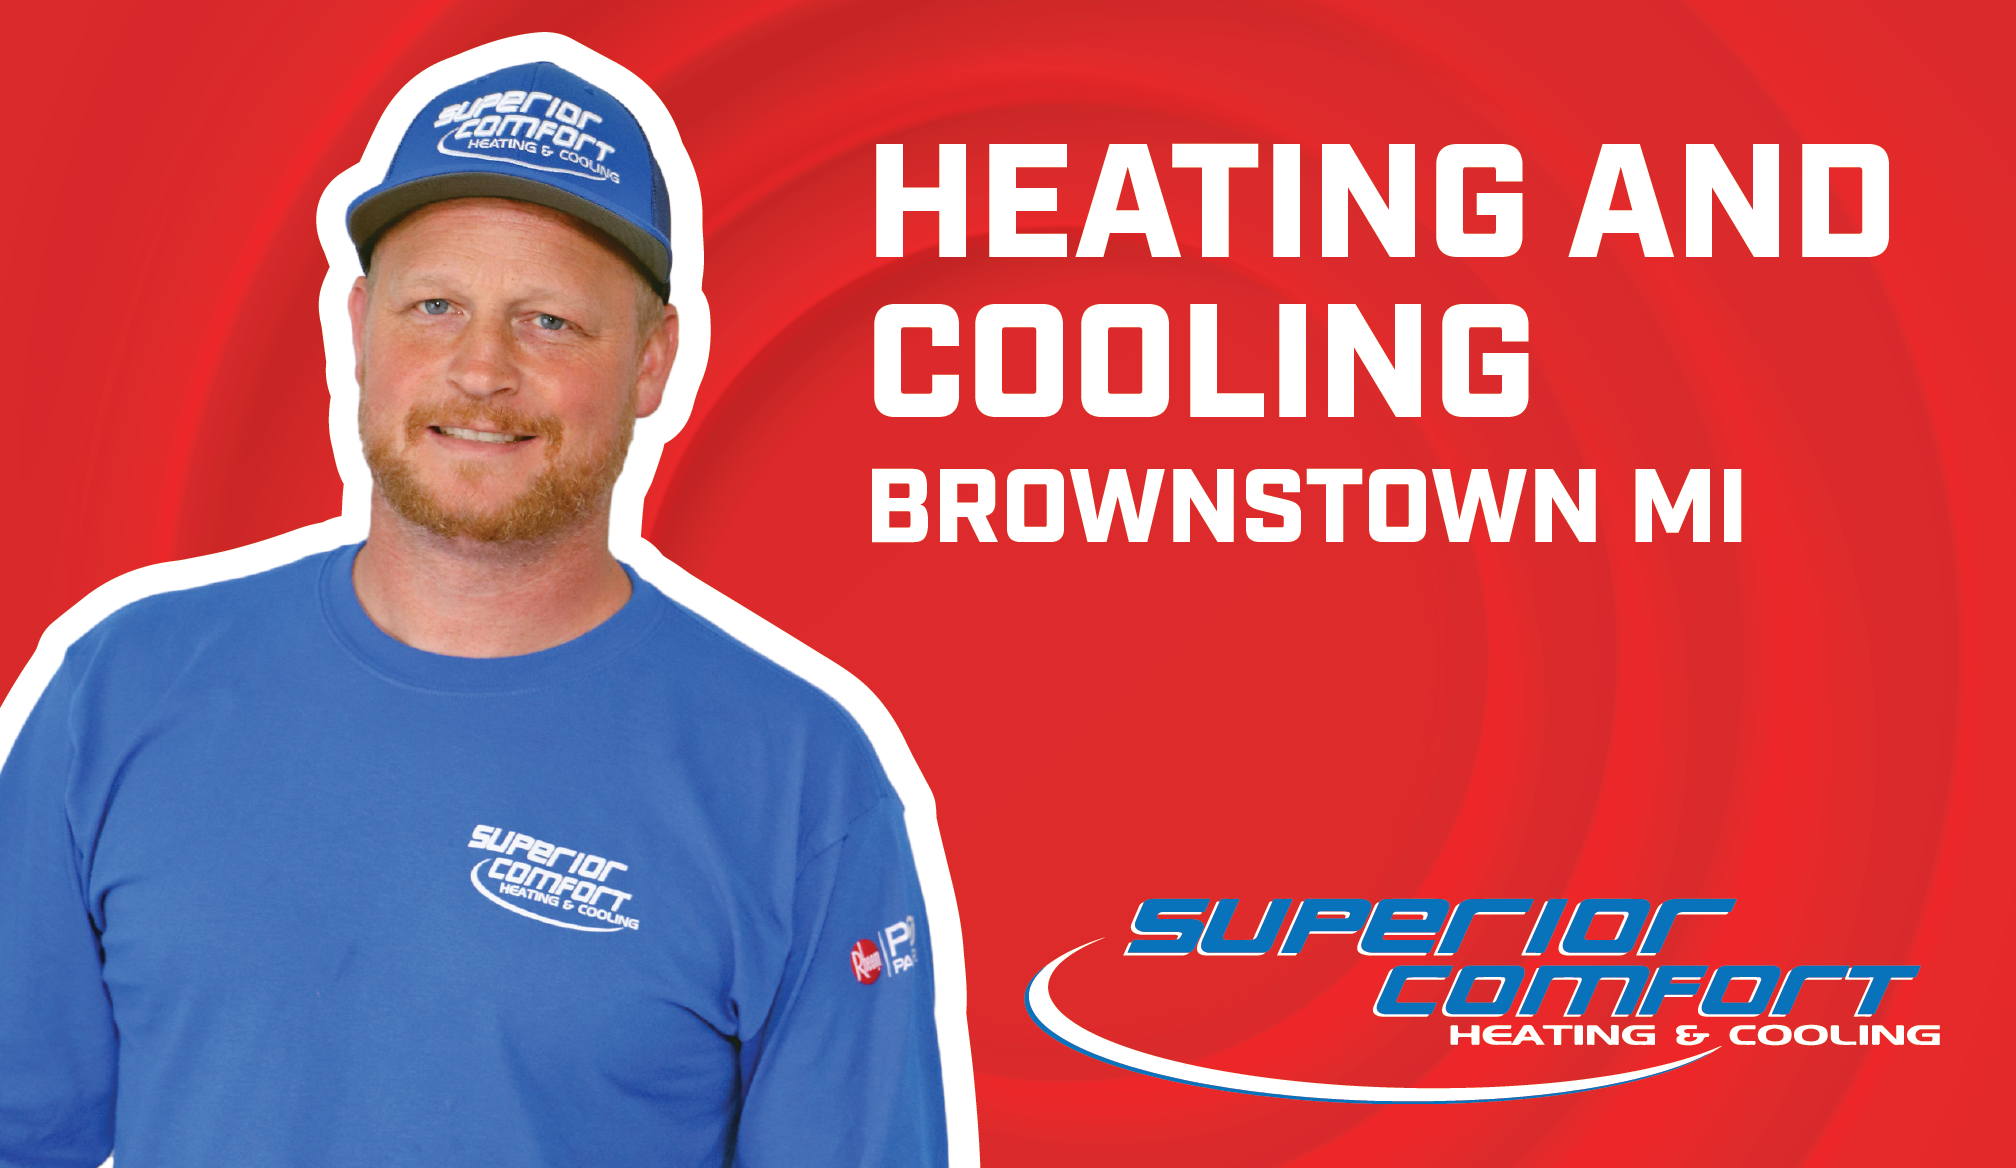 Heating and Cooling in Brownstown Michigan